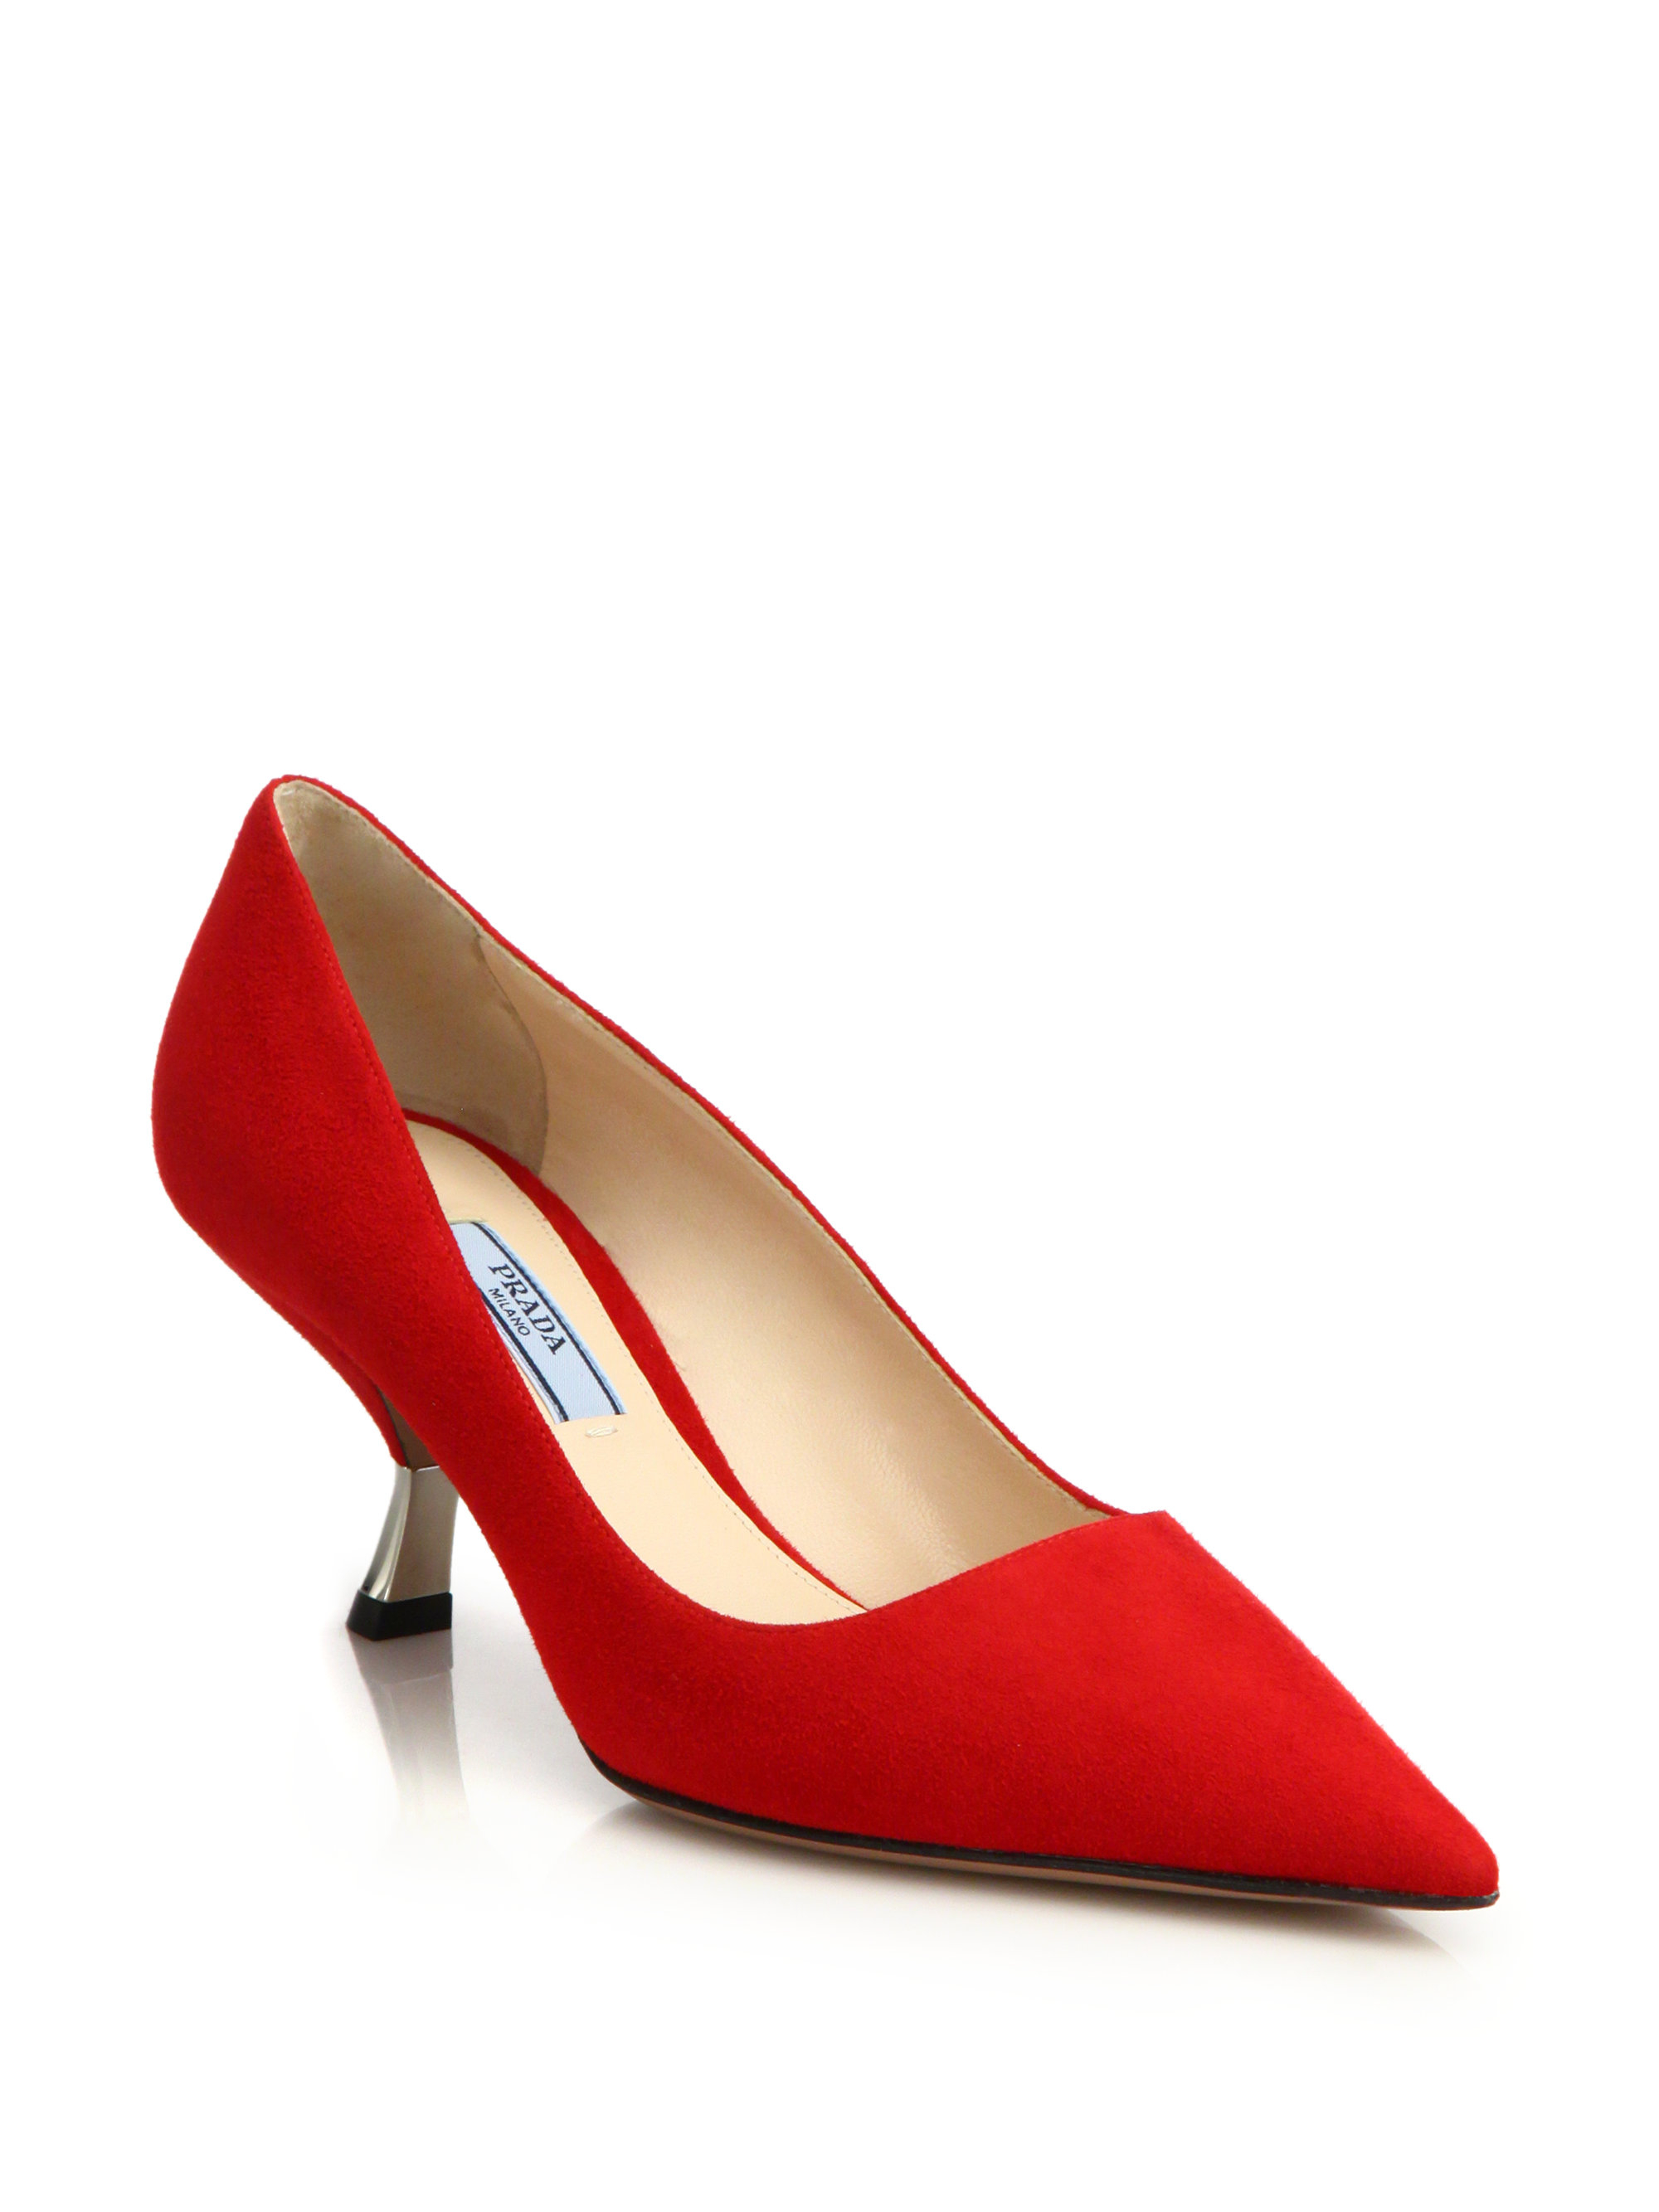 Free shipping and returns on Women's Red Pump Heels at coolmfilb6.gq